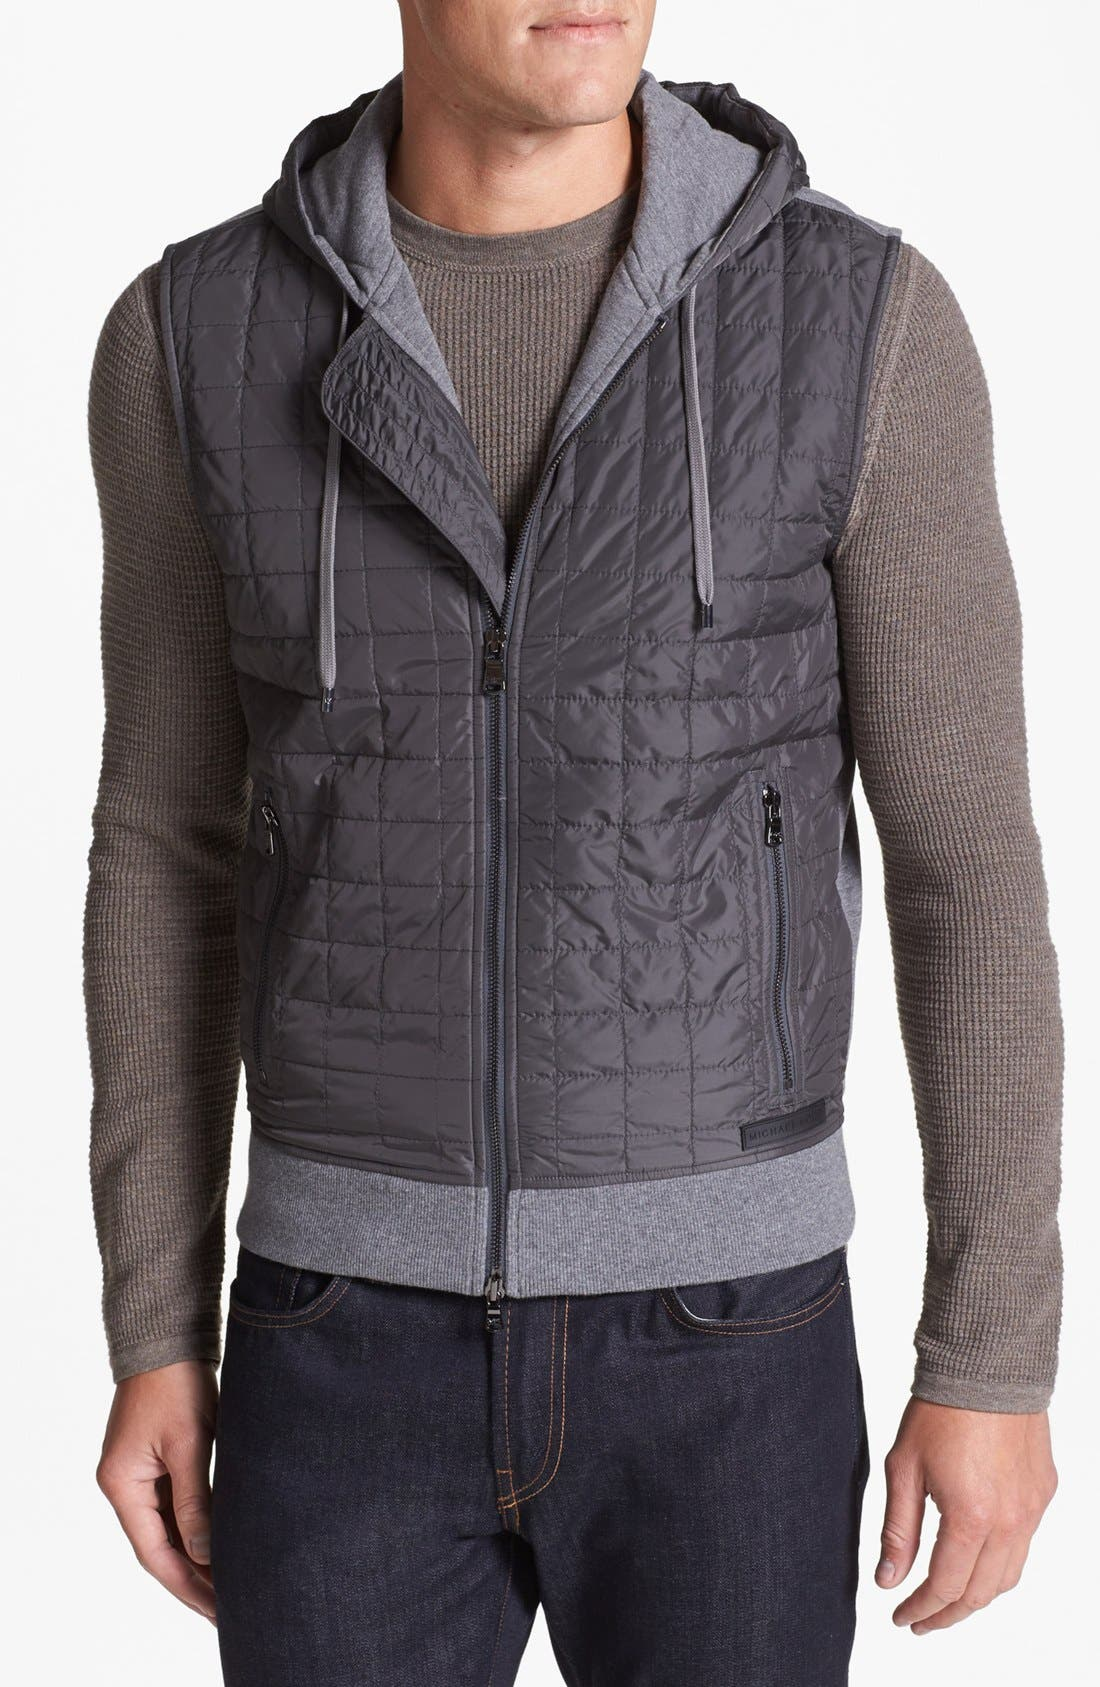 Alternate Image 1 Selected - Michael Kors Quilted Hooded Vest